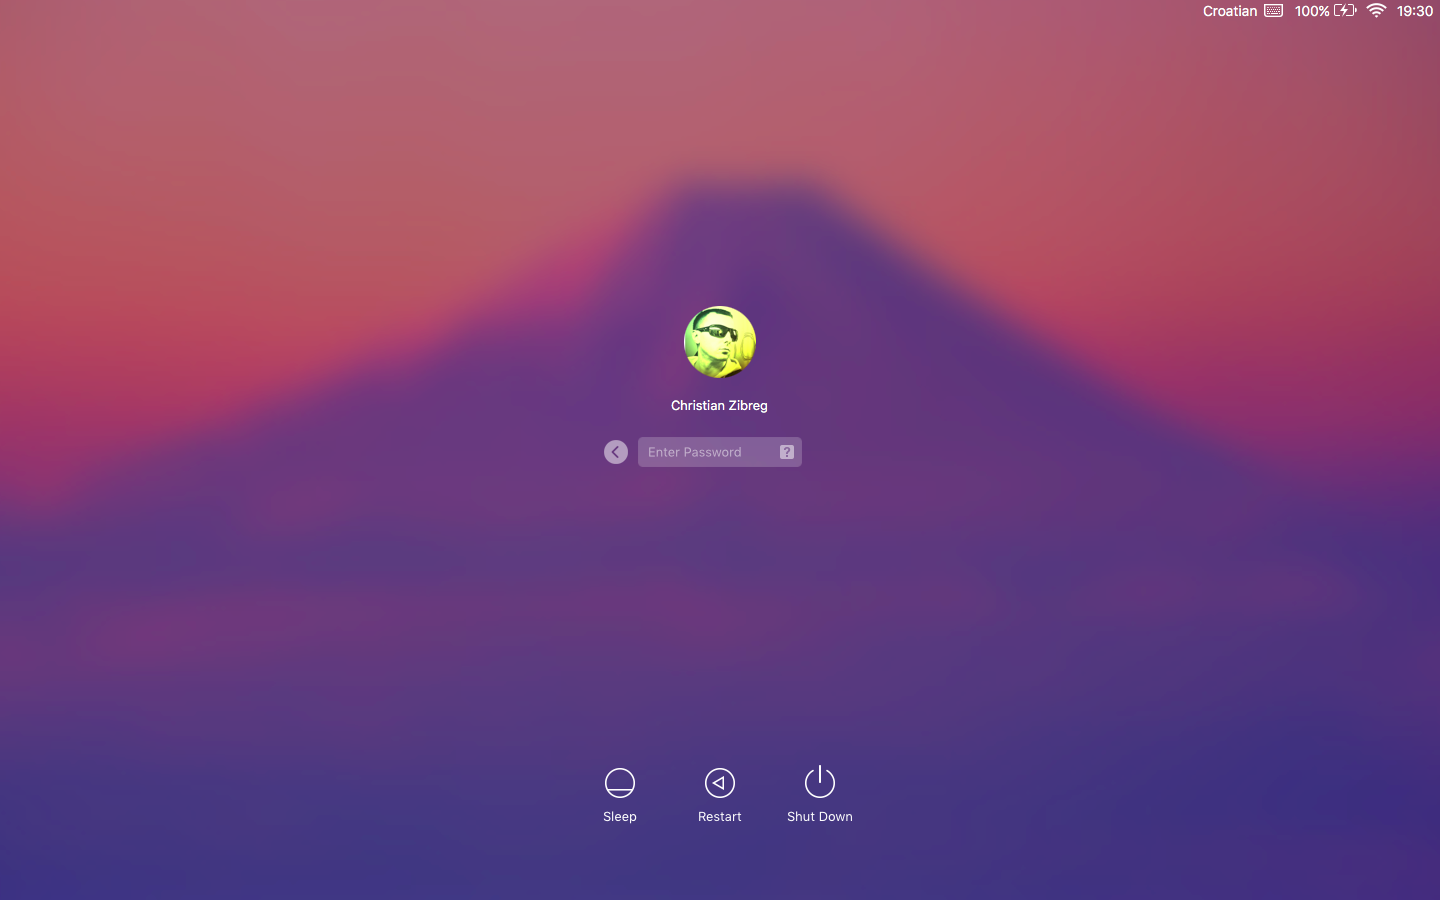 OS X El Capitan login profile image Mac screenshot 002